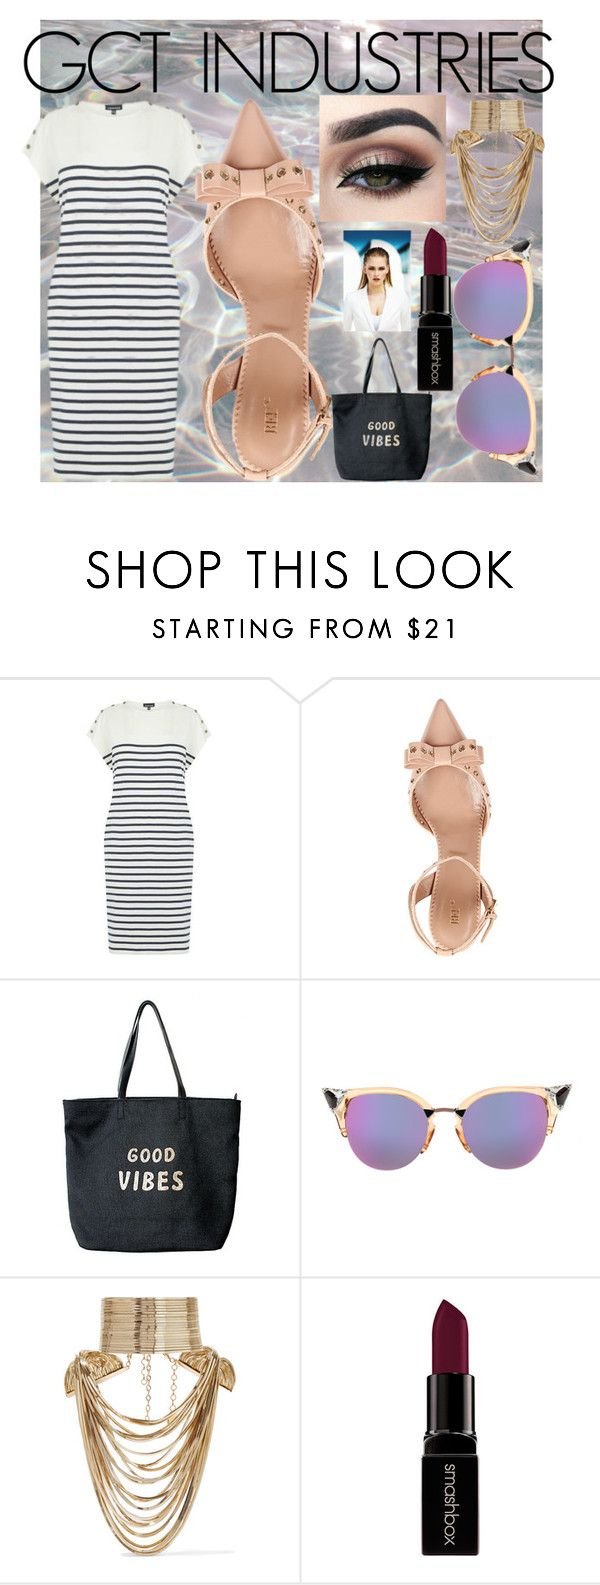 """get the LOOK LOVE the LOOK"" by gctindustries on Polyvore featuring Warehouse, RED Valentino, Venus, Fendi, Rosantica, Smashbox, MISCHA and GetTheLook"